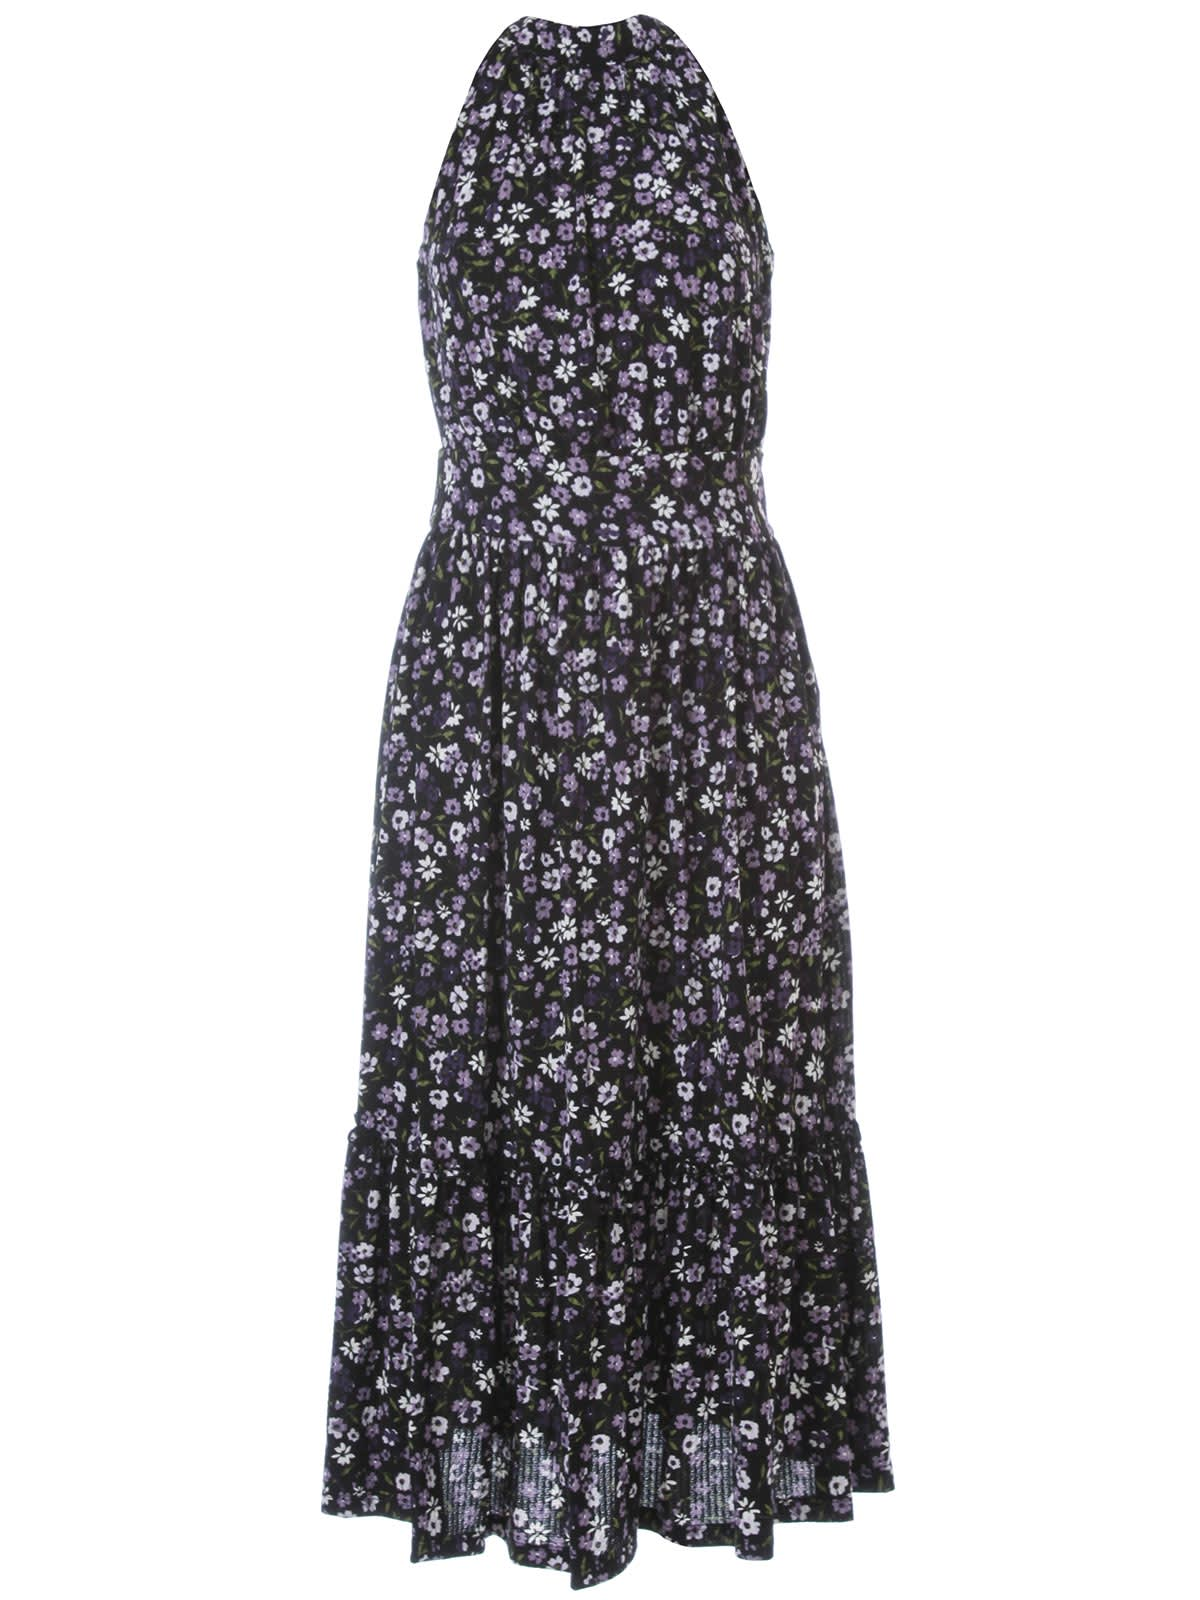 Buy MICHAEL Michael Kors Grdn Patch Tier Midi Dress online, shop MICHAEL Michael Kors with free shipping